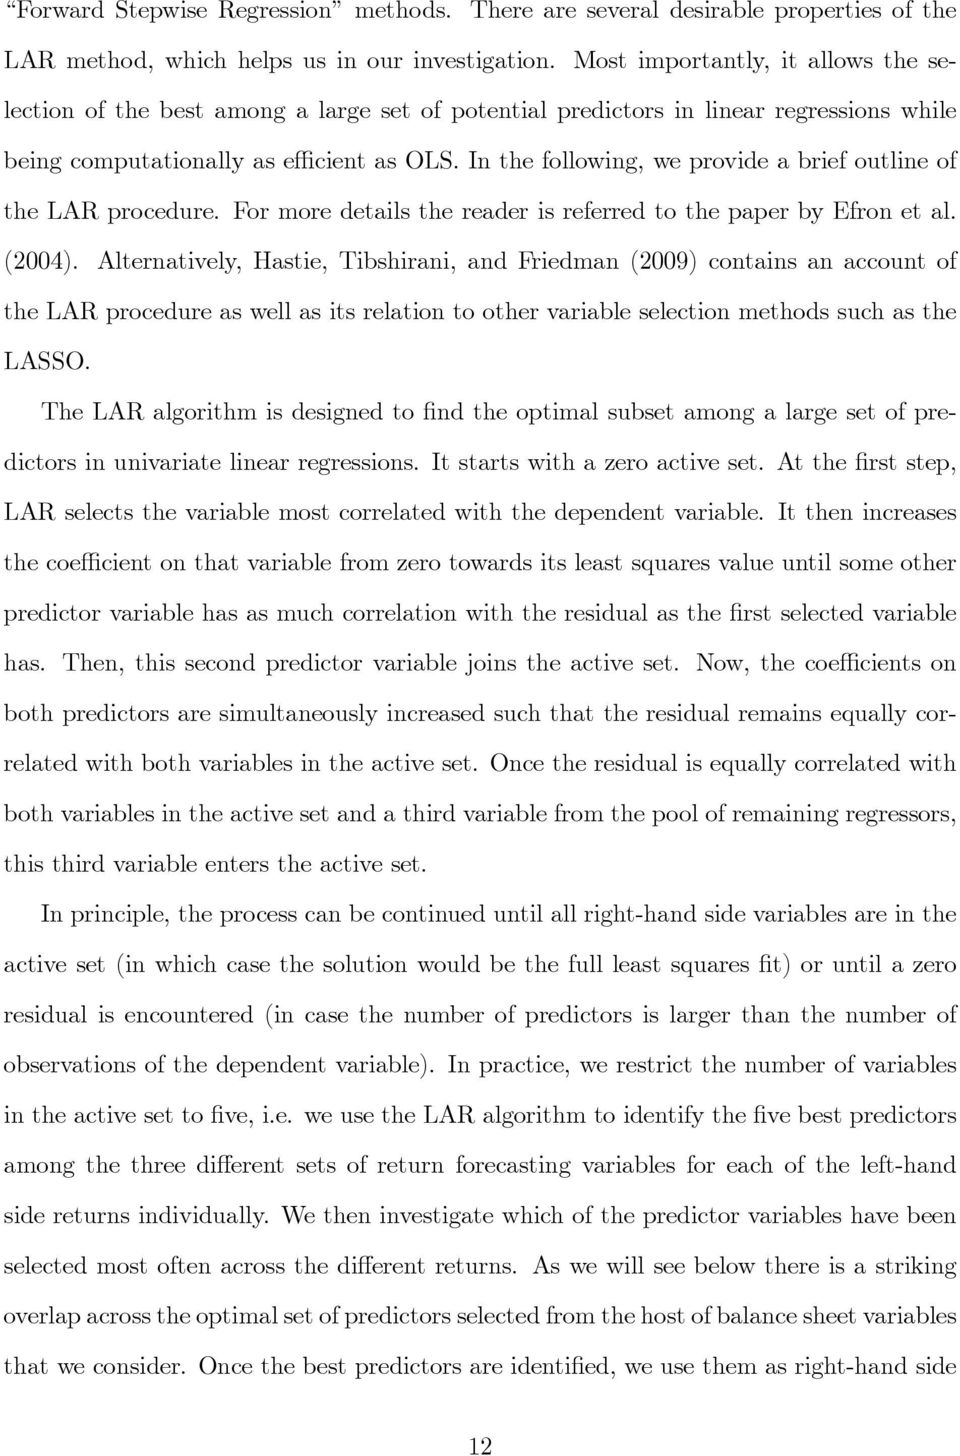 In the following, we provide a brief outline of the LAR procedure. For more details the reader is referred to the paper by Efron et al. (2004).